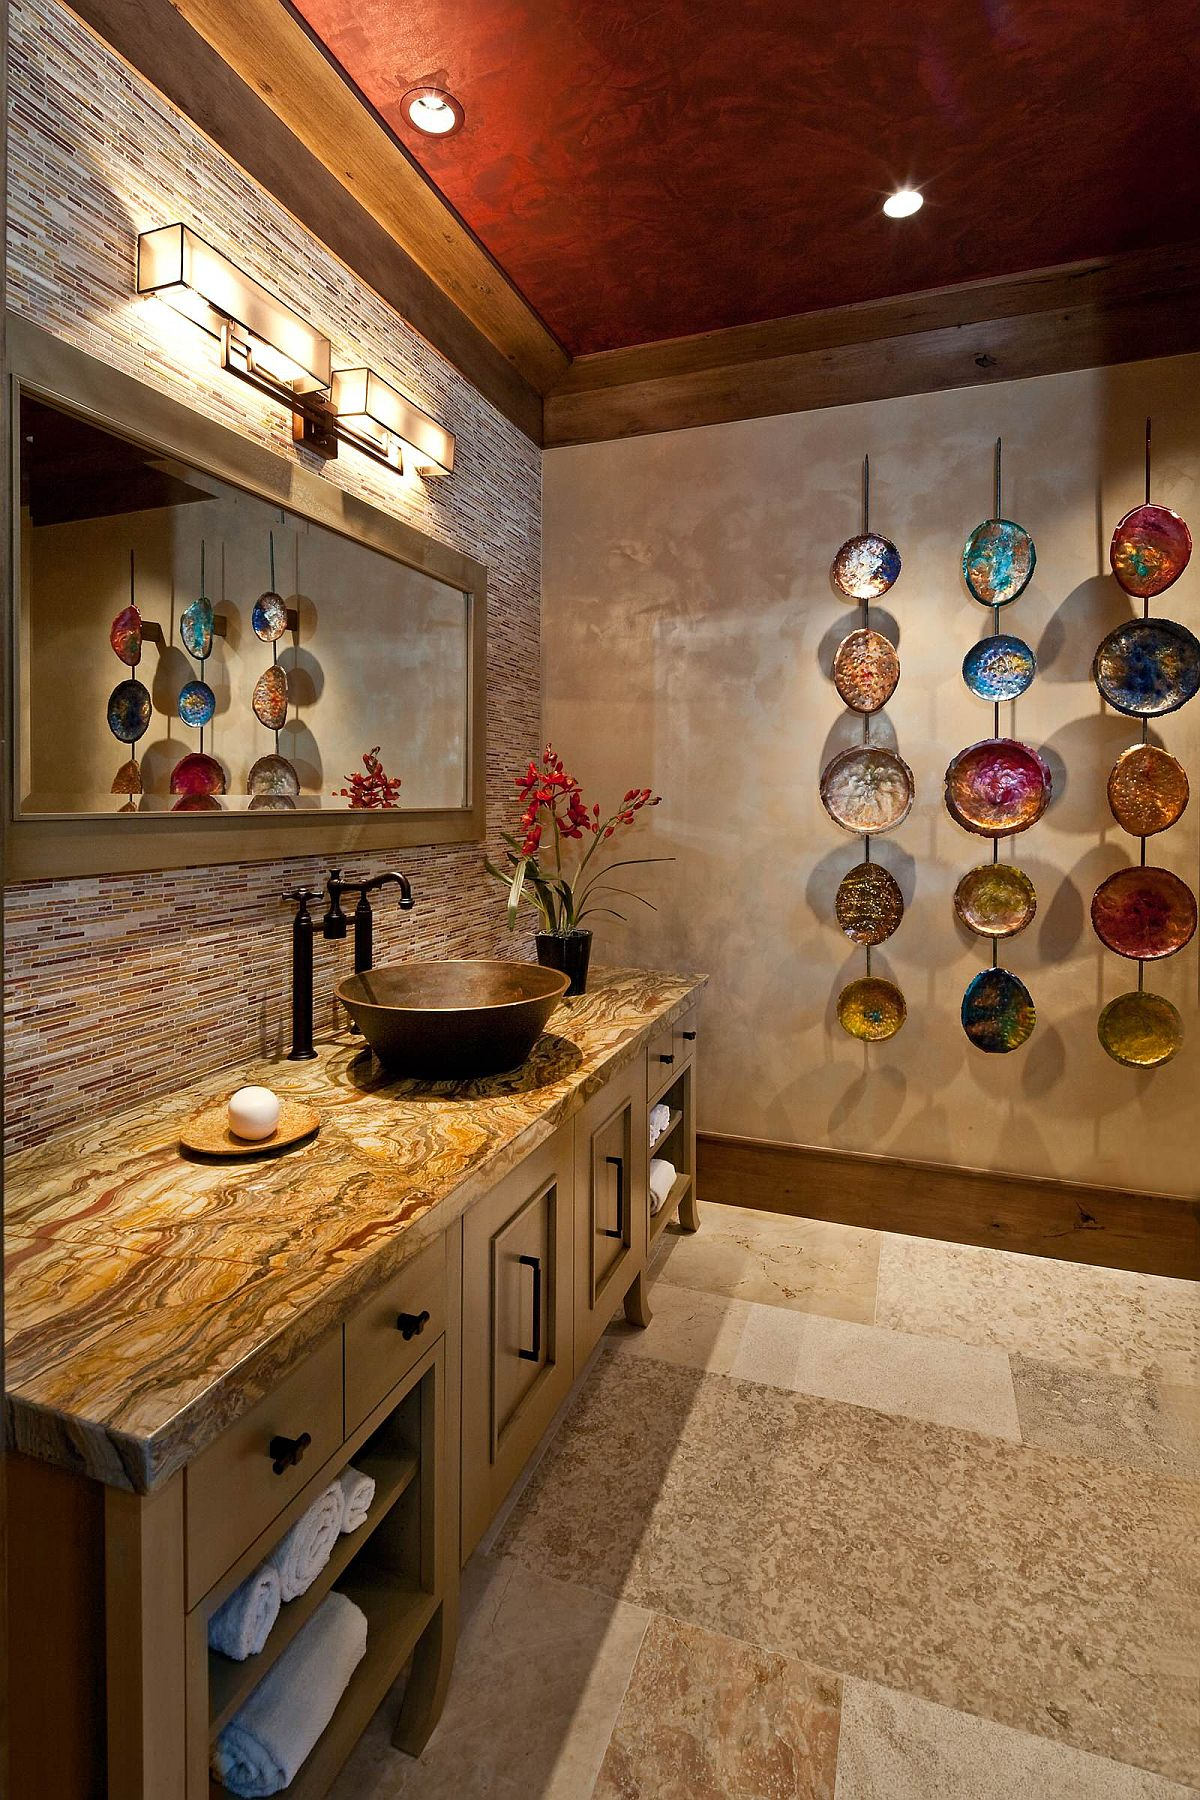 Wall-art-piece-feels-quirky-and-different-in-this-modern-bathroom-98059